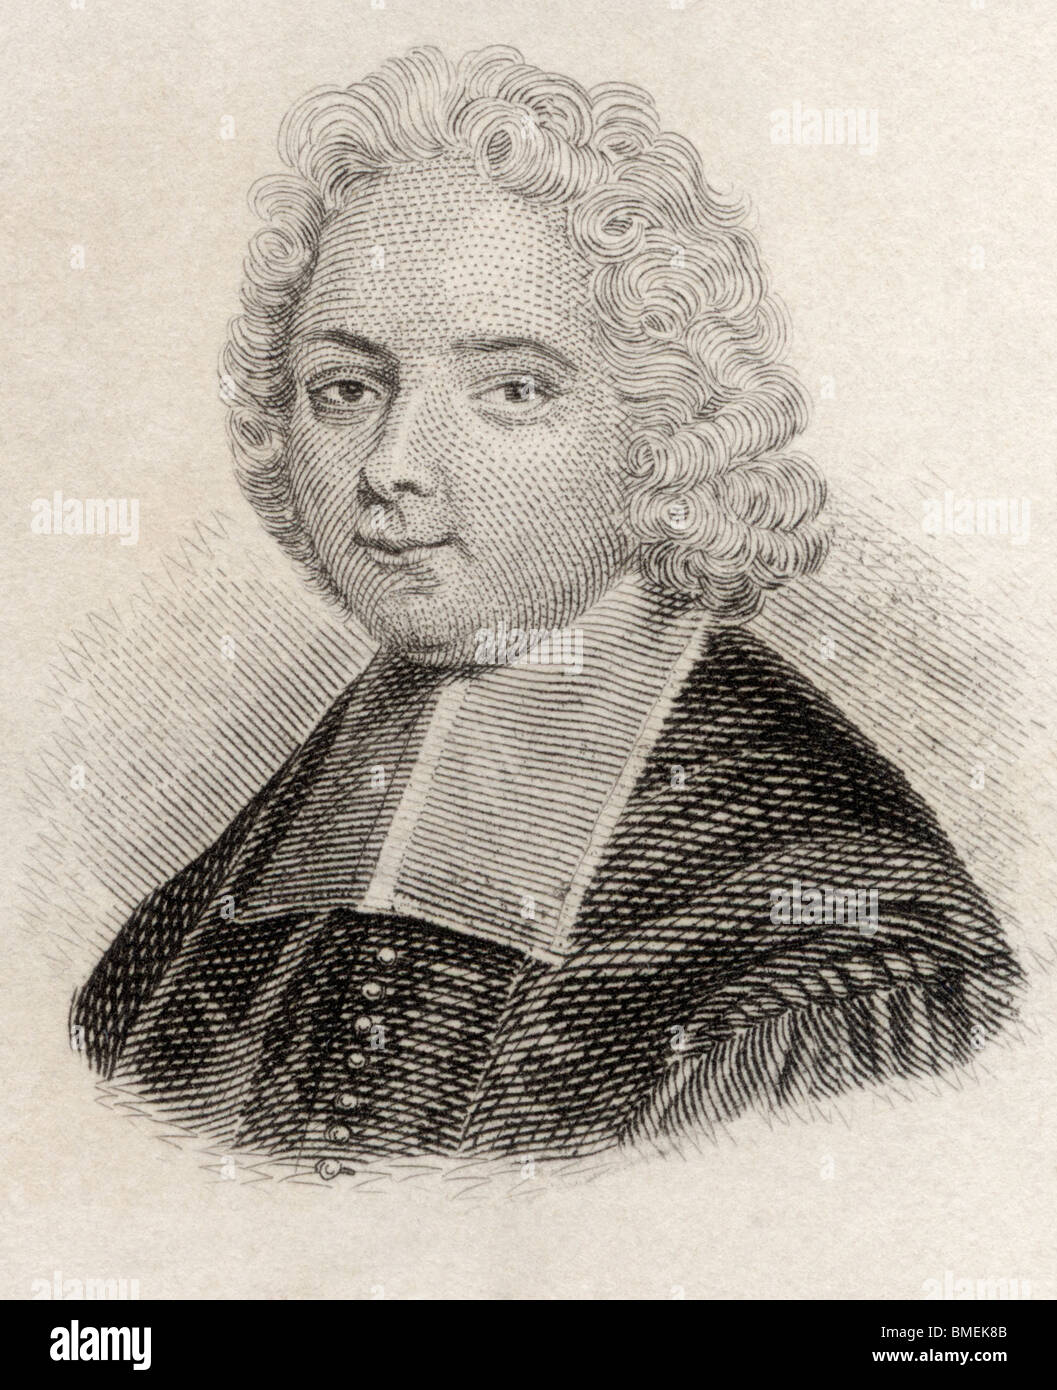 Louis Ellies du Pin, or Dupin,1657 to 1719. French ecclesiastical historian. - Stock Image